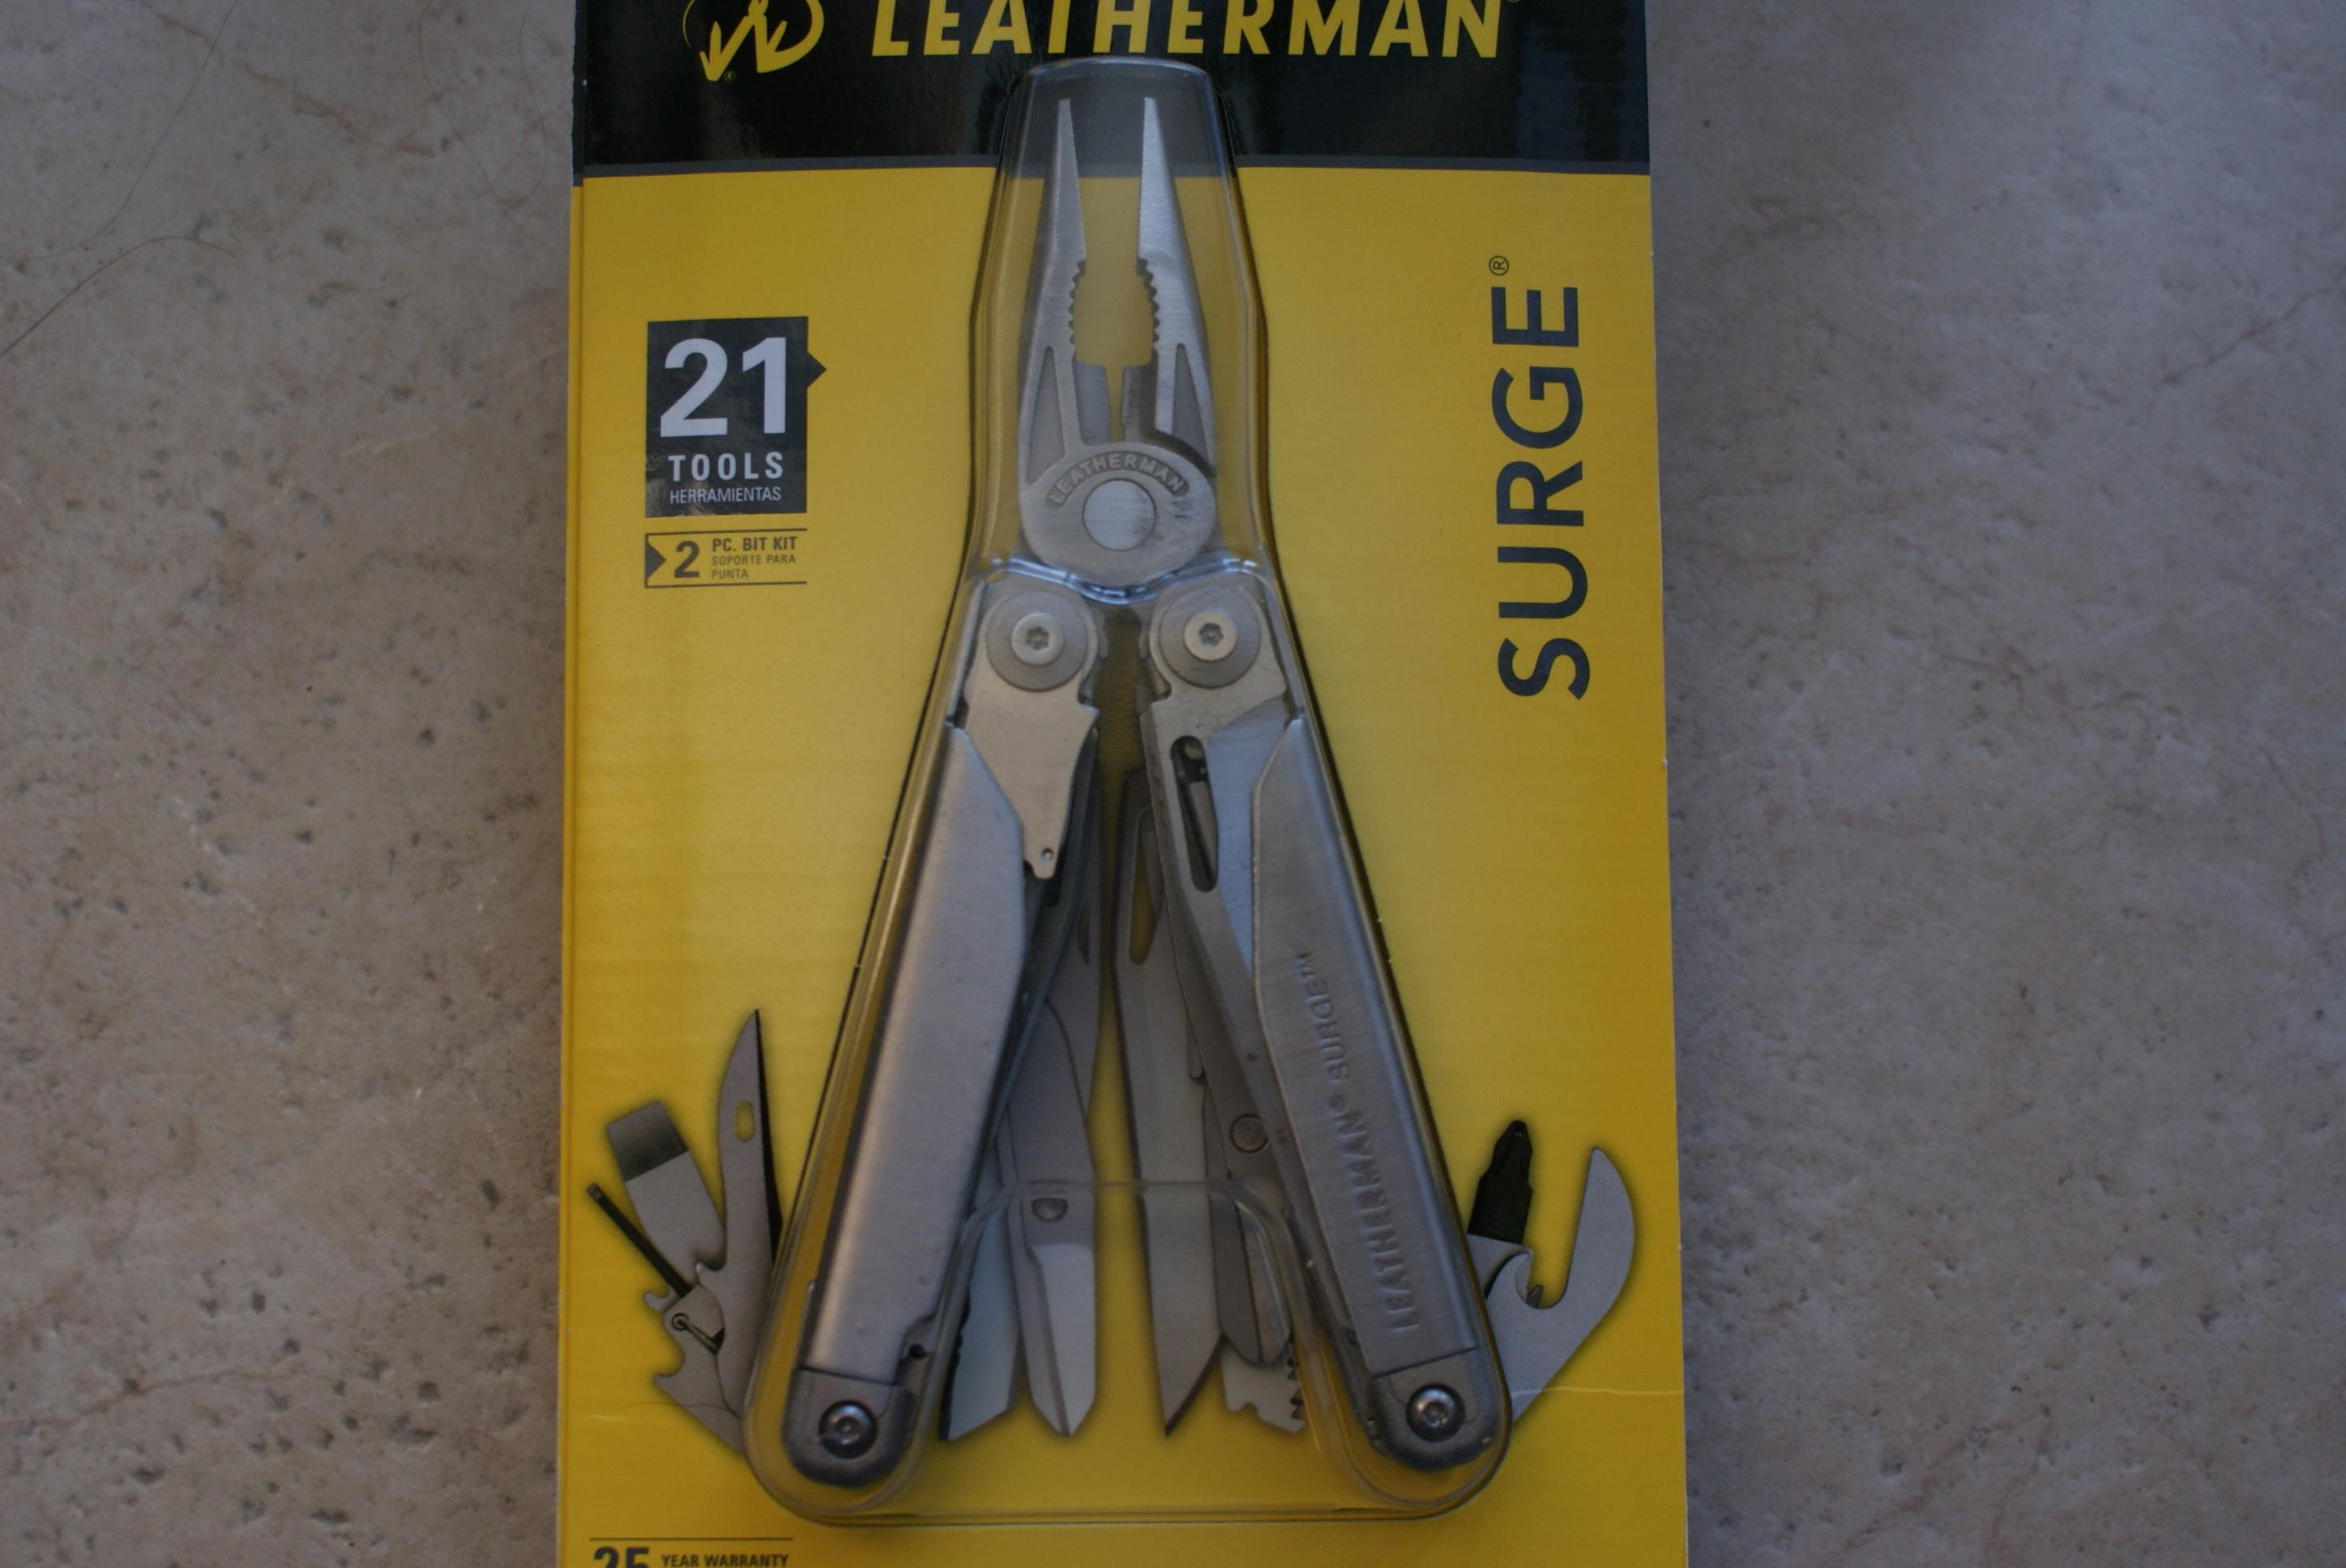 My new and free Leatherman Surge-dsc02836.jpg